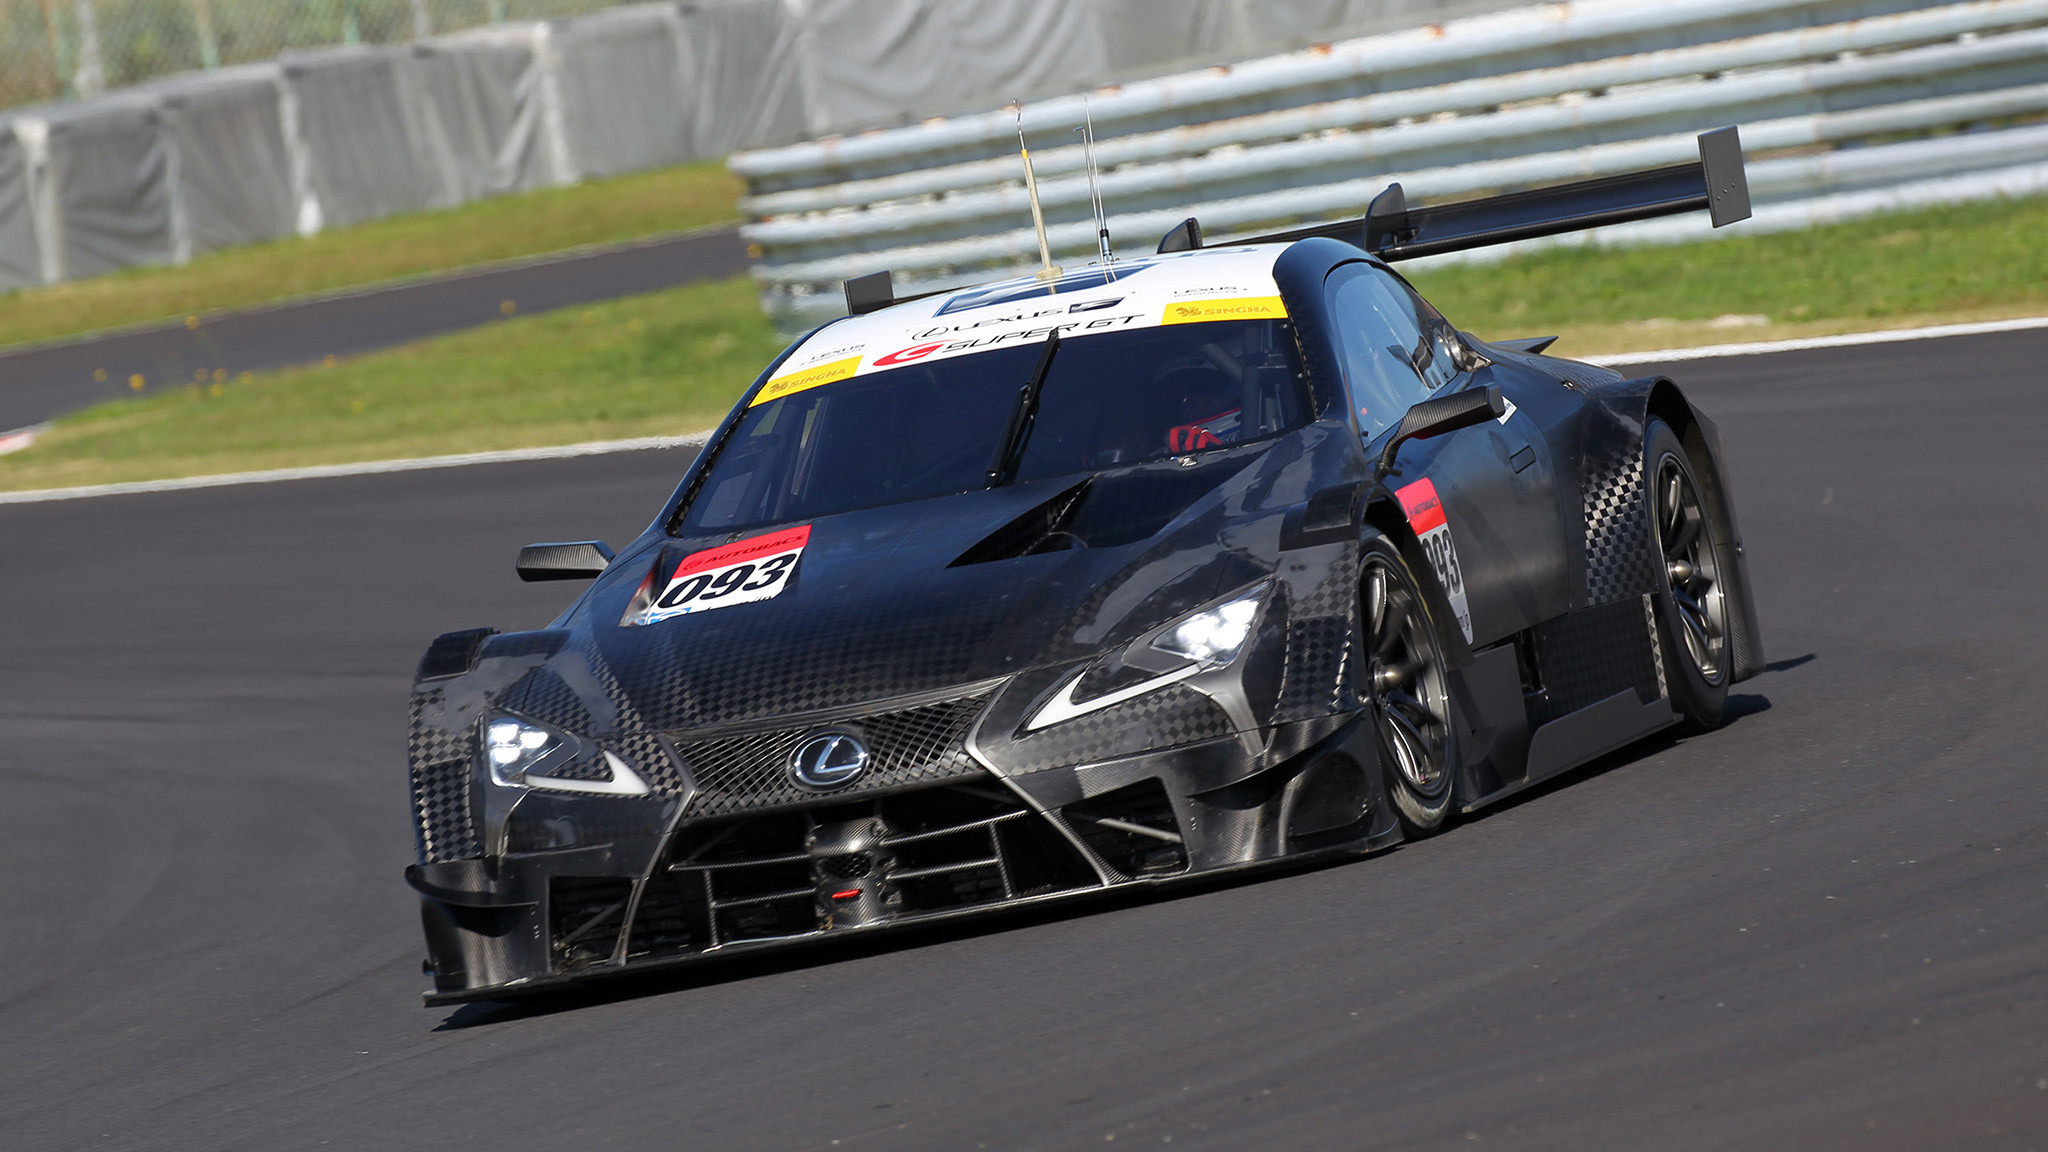 Lexus And Nissan To Bring Cars To The DTM Finale